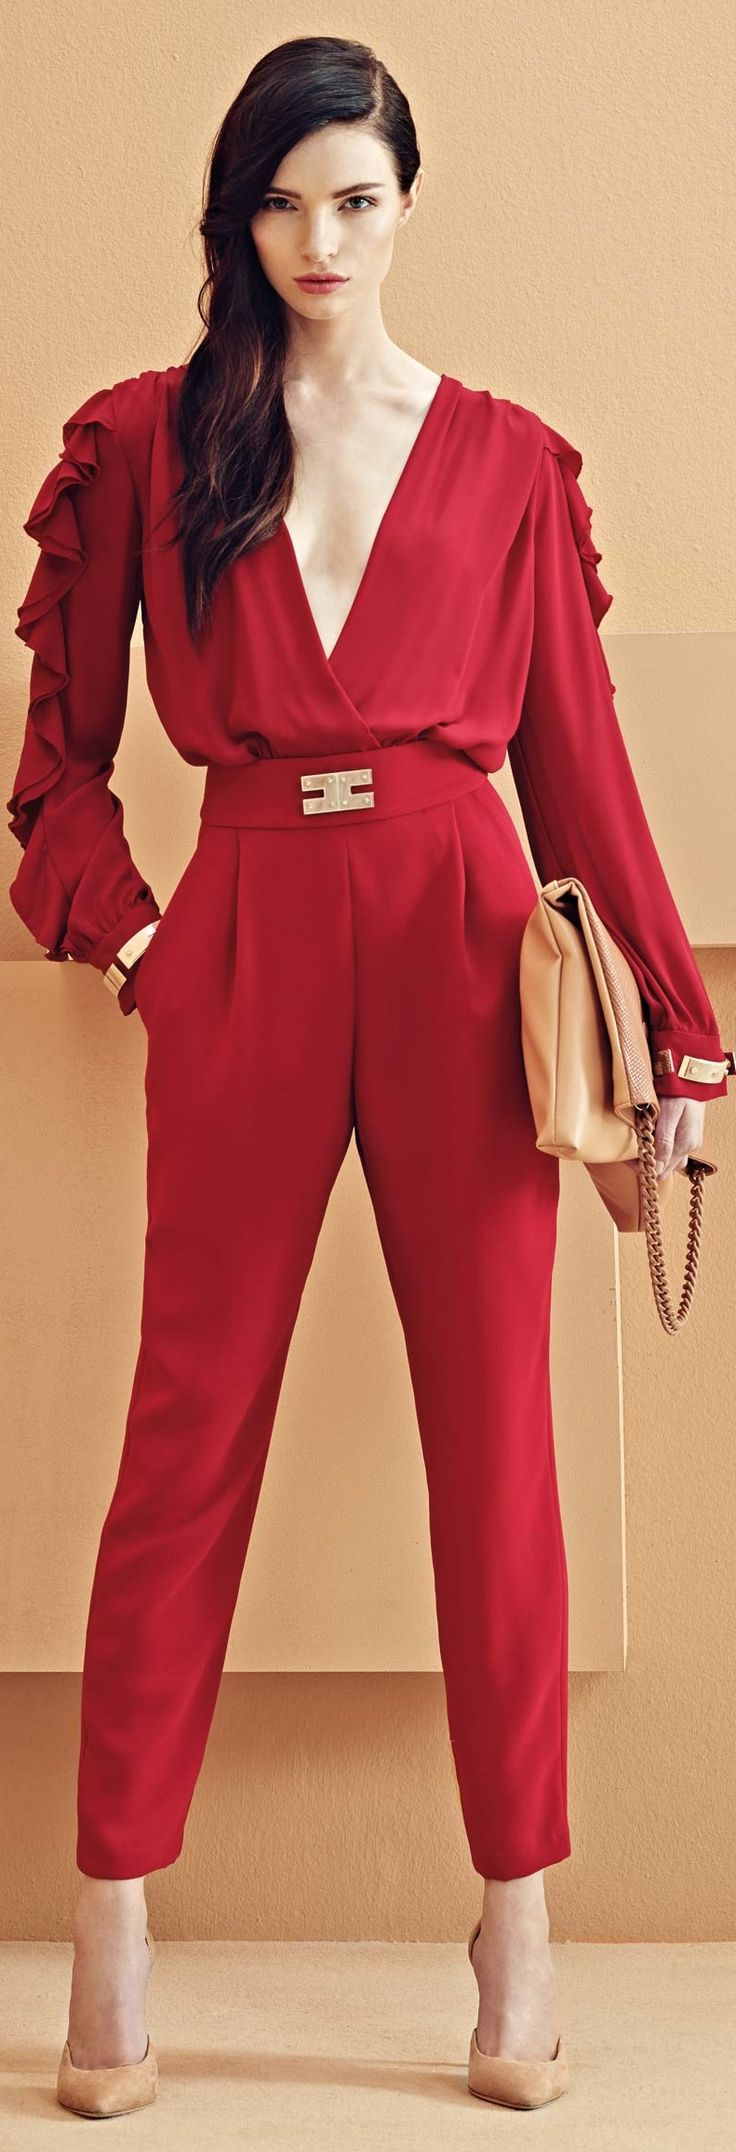 Red Jumpsuit Evening Wear